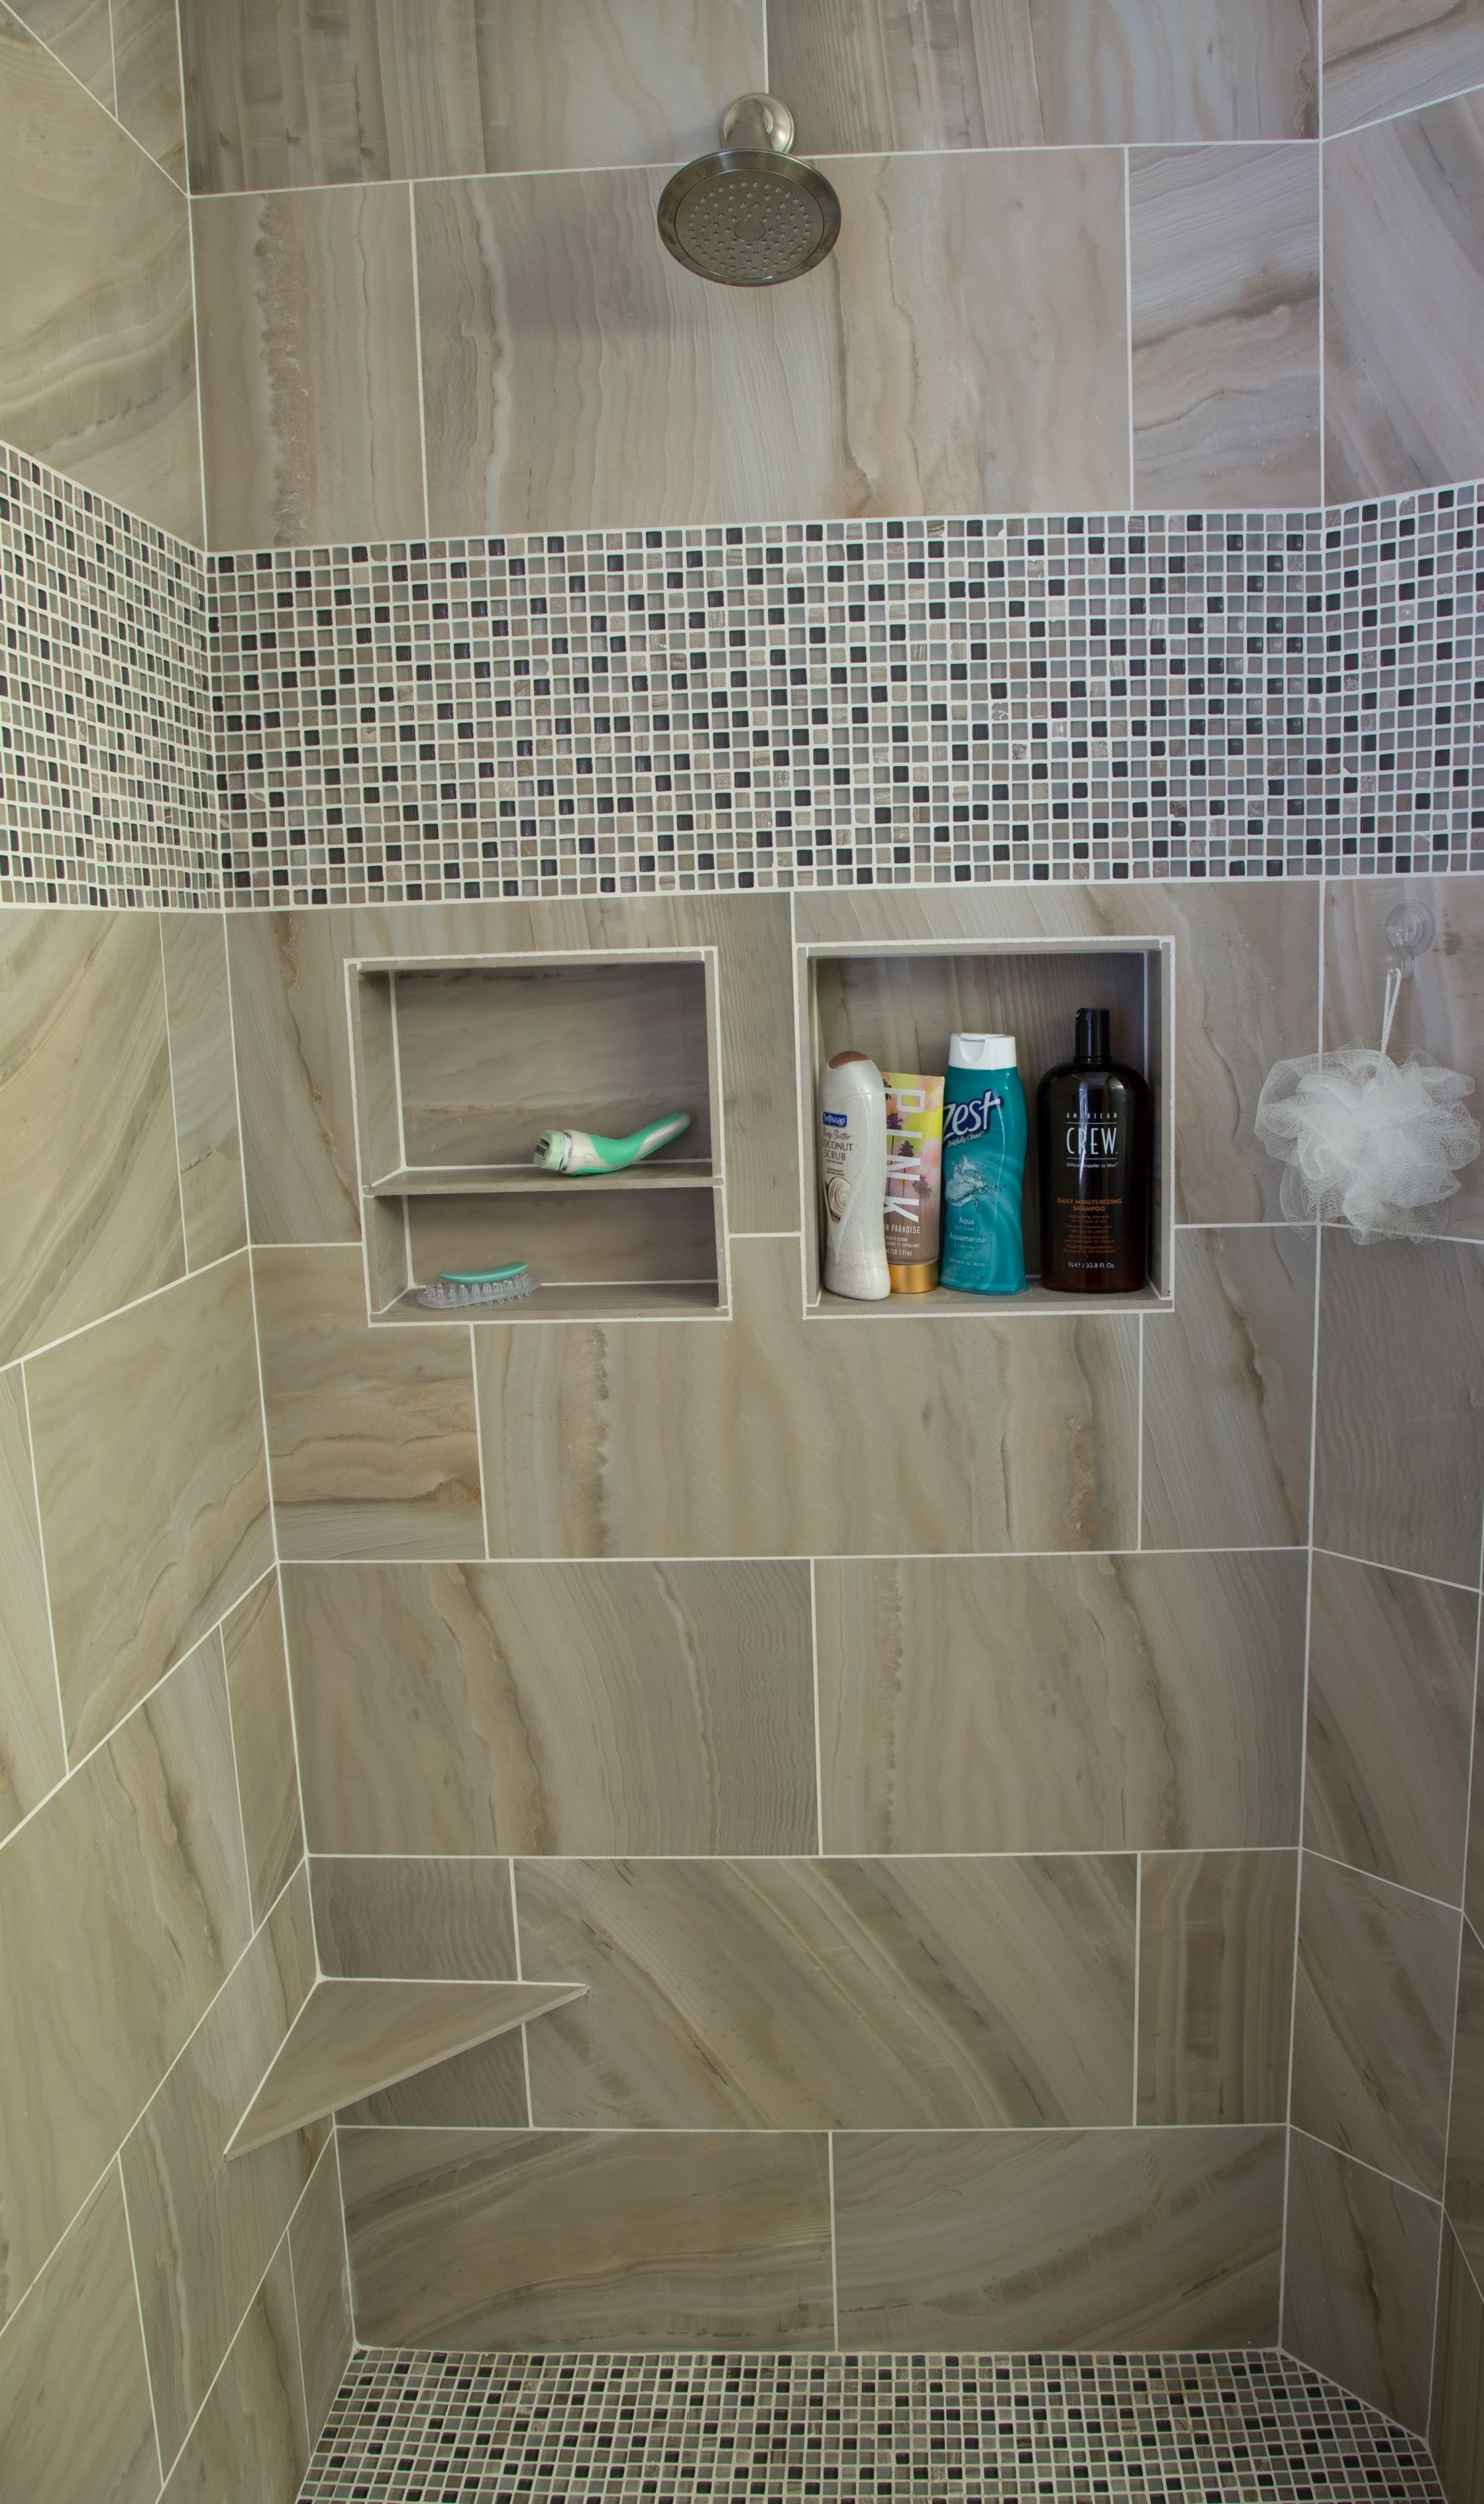 Built In Soap And Shampoo Niches Should Be Included In The Design Of Your Custom Shower Bathroomd Custom Bathroom Cabinets Bathrooms Remodel Bathroom Design